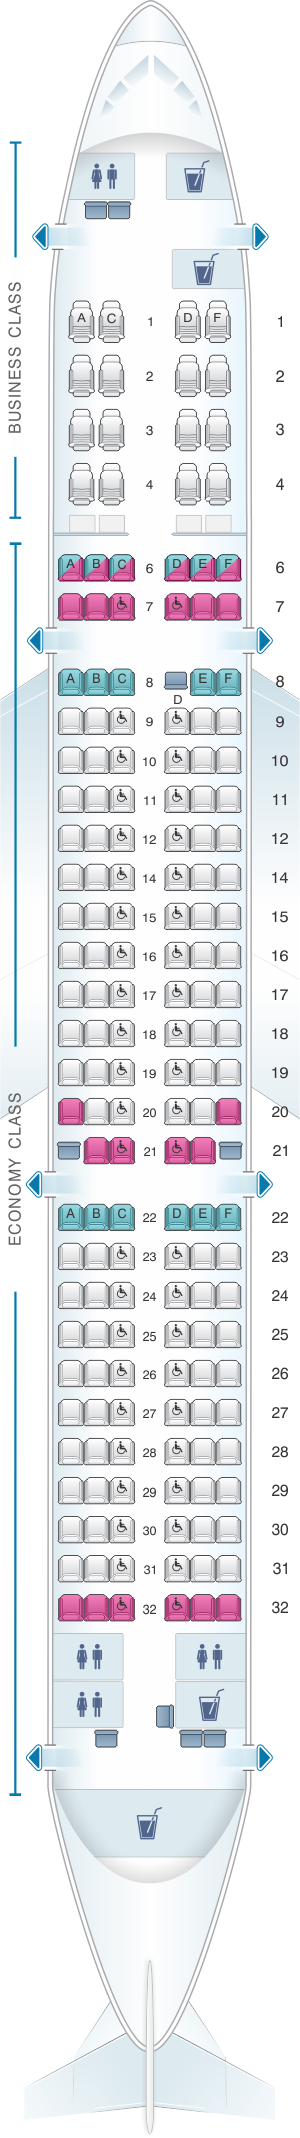 Seat map for SriLankan Airlines Airbus A321 231 Config. 2